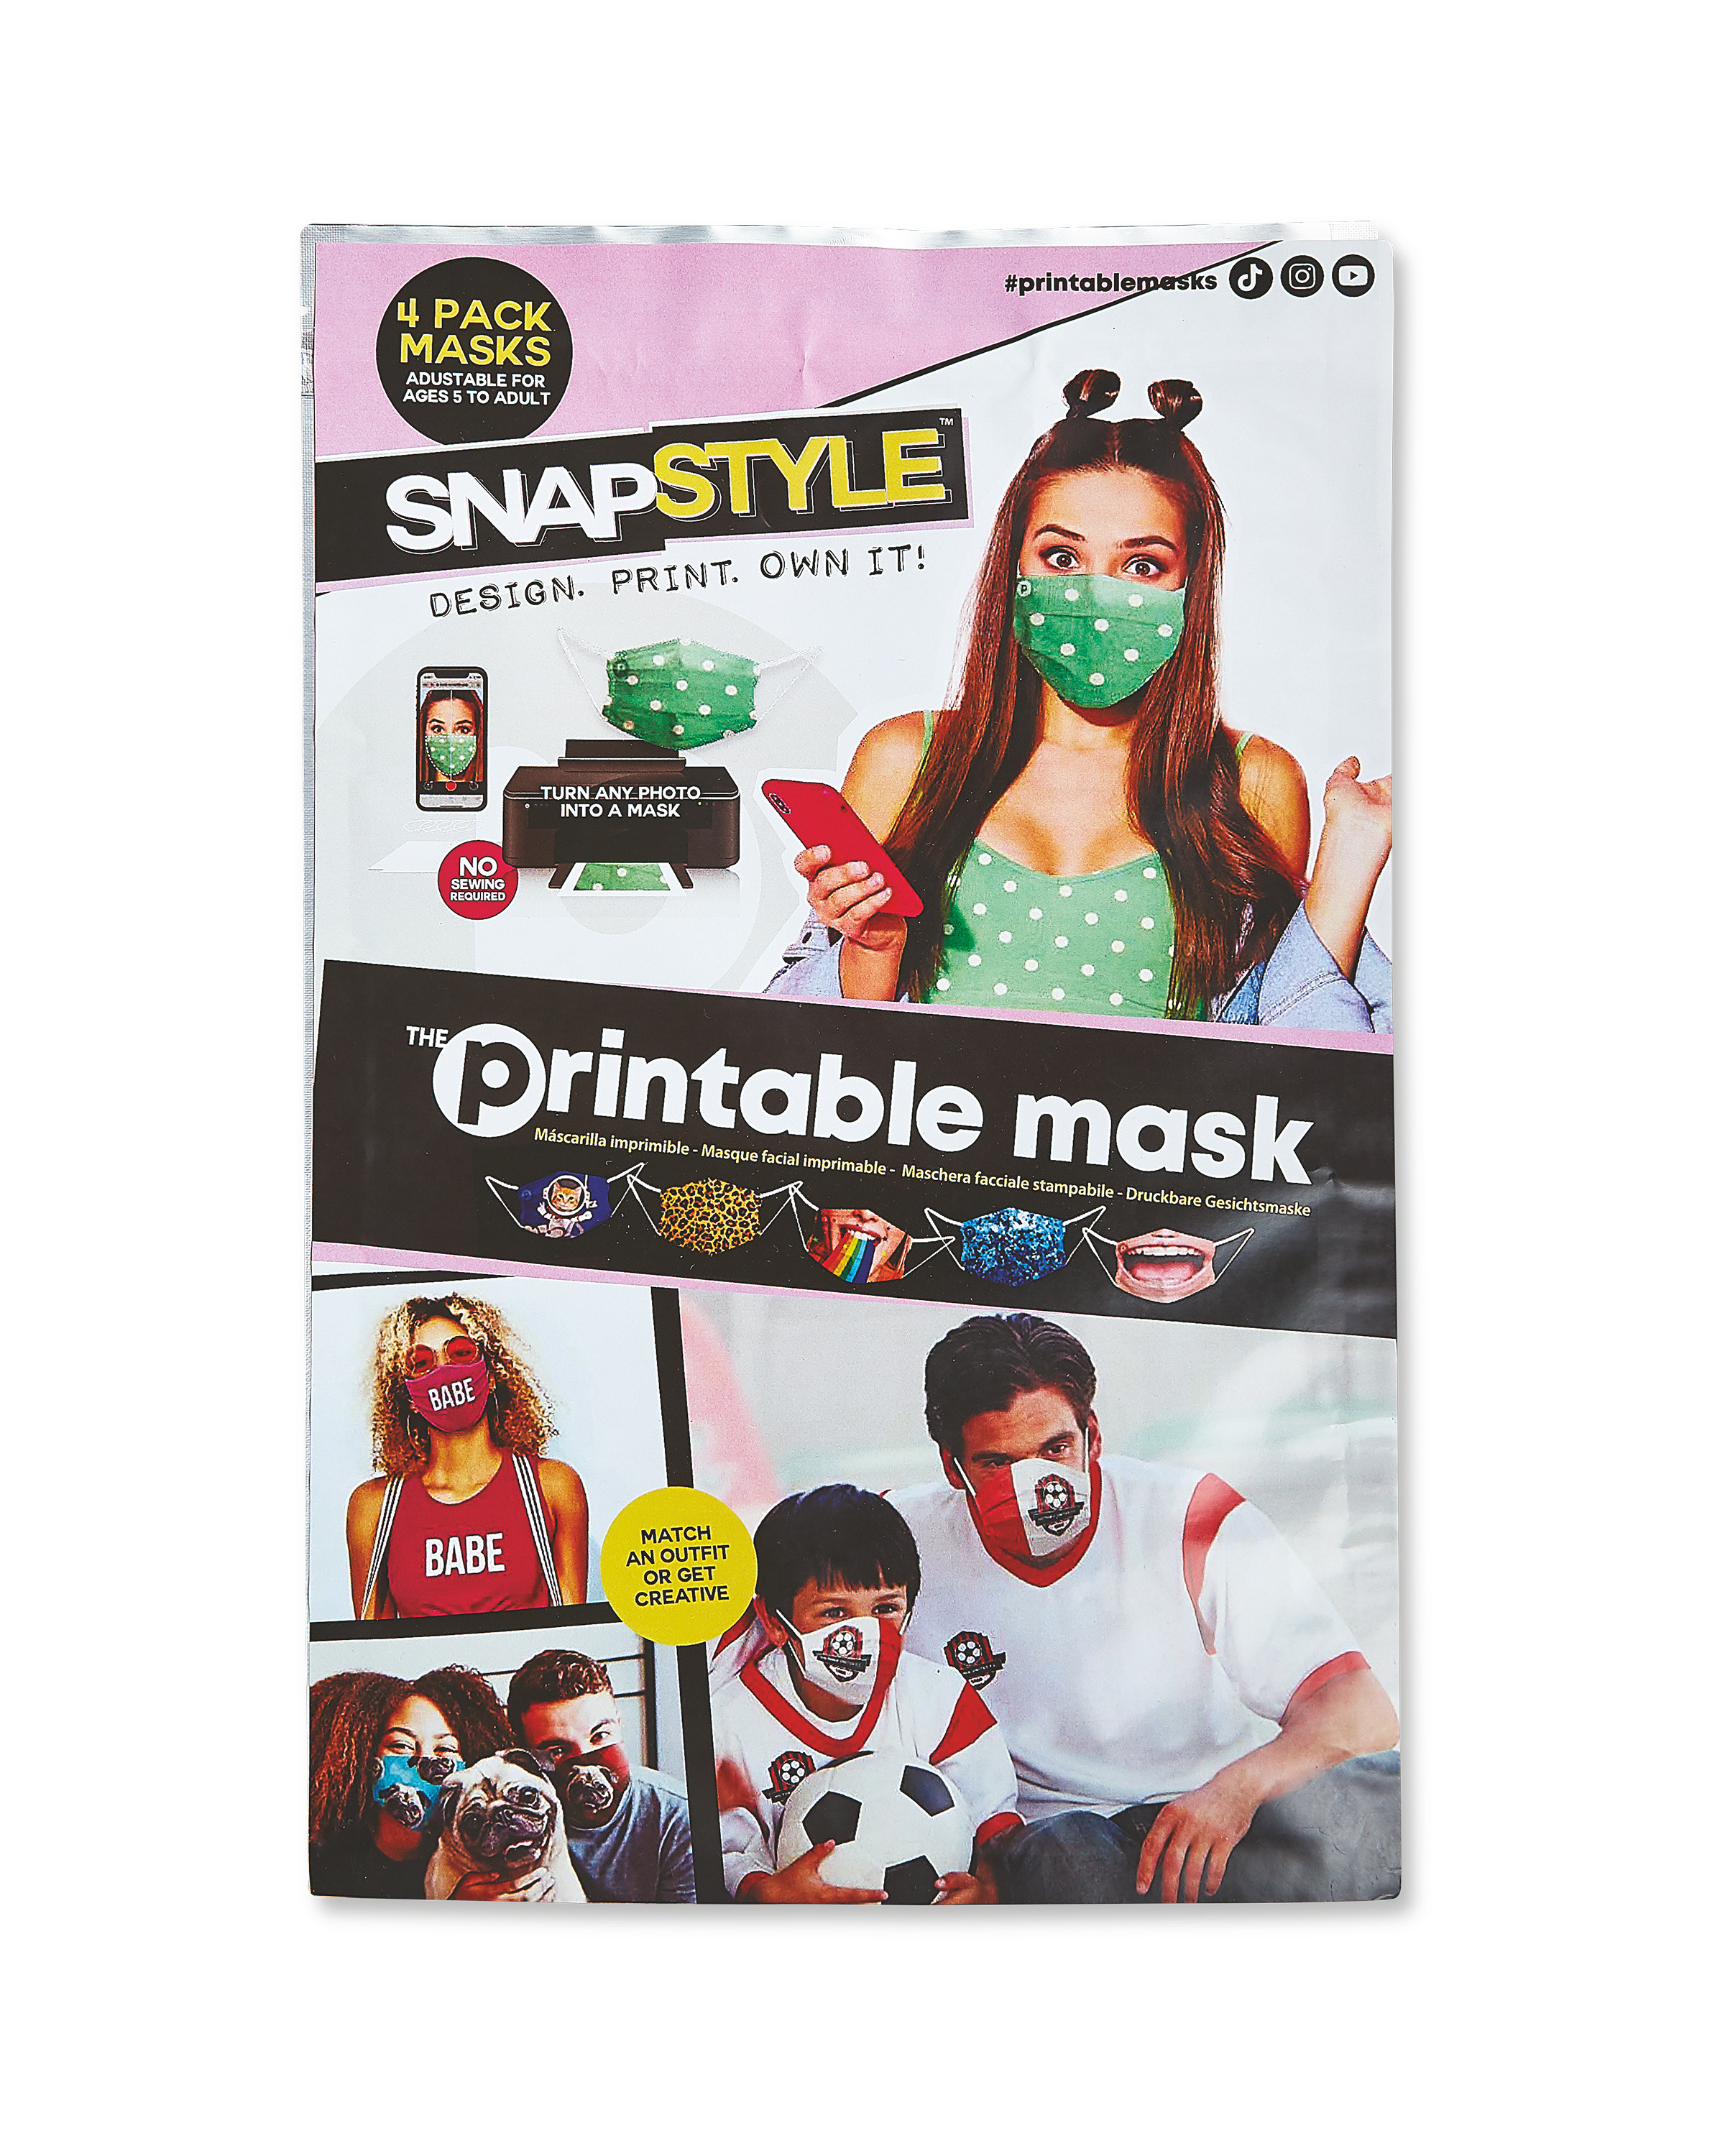 ALDI > General > Snapstyle Printable Mask 4 Pack